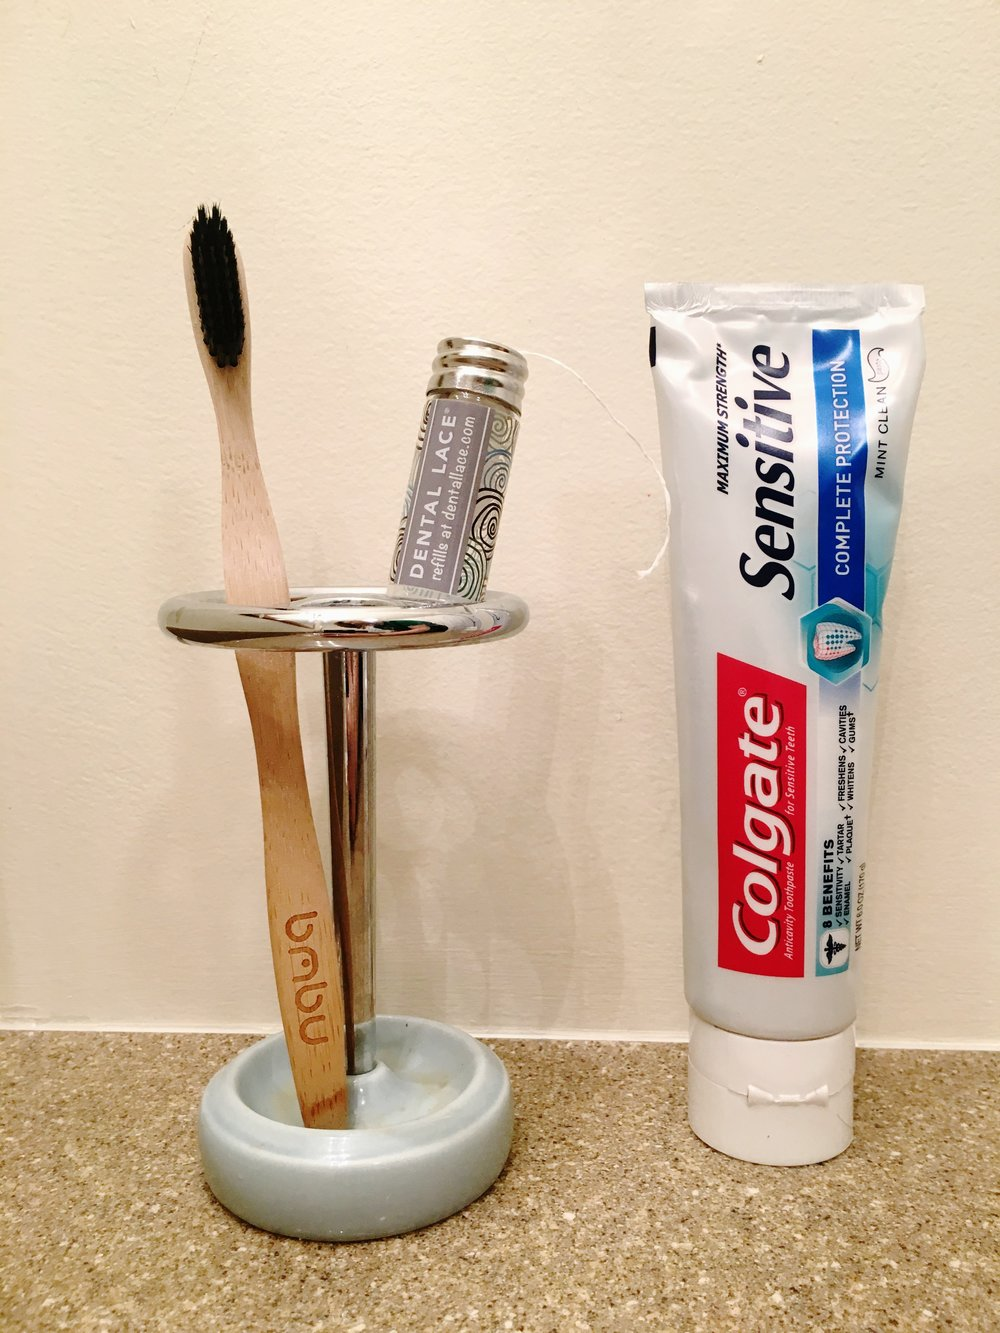 Toothpaste - You can make your own toothpaste or buy tooth powder. I won't go into that here because it's not something I can really recommend. I use Colgate toothpaste because they are partnered with Terracylce to recycle their products, even toothpaste tubes. I want to emphasize that you don't need to sacrifice things like toothpaste or medicine which can be beneficial in the long term just to reduce your waste.